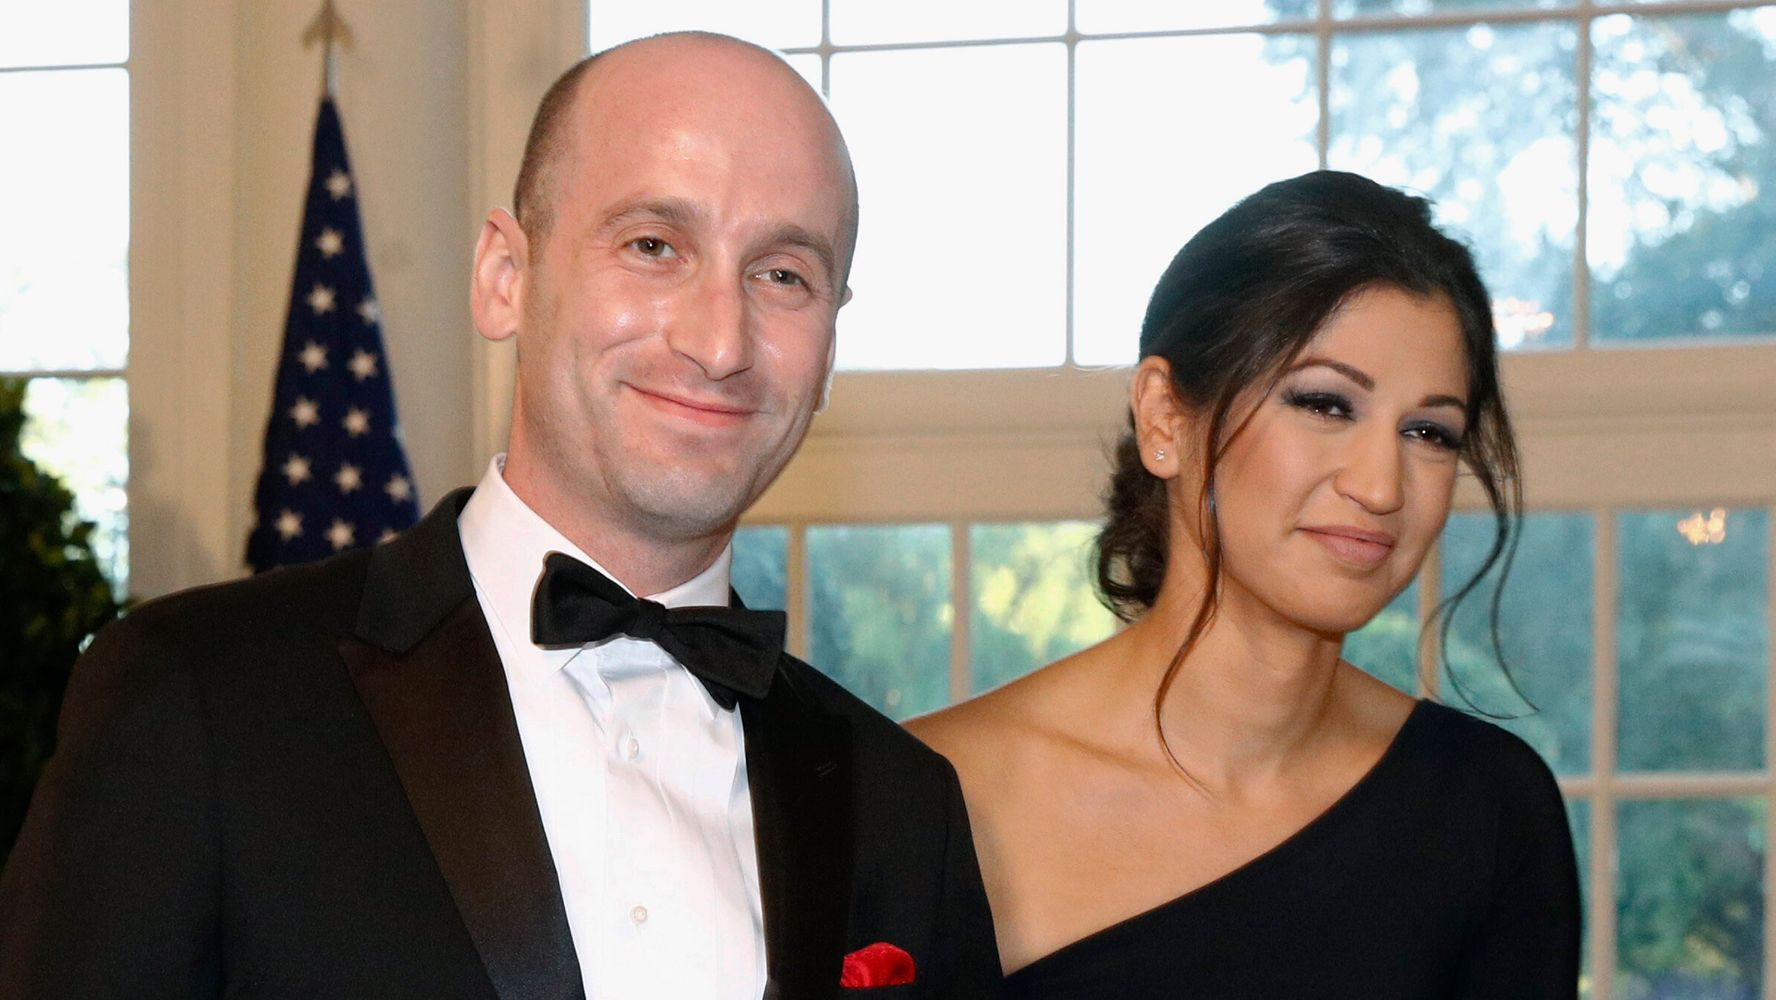 Stephen Miller's Uncle Donates To Pro-Refugee Group As 'Wedding Gift' To Nephew